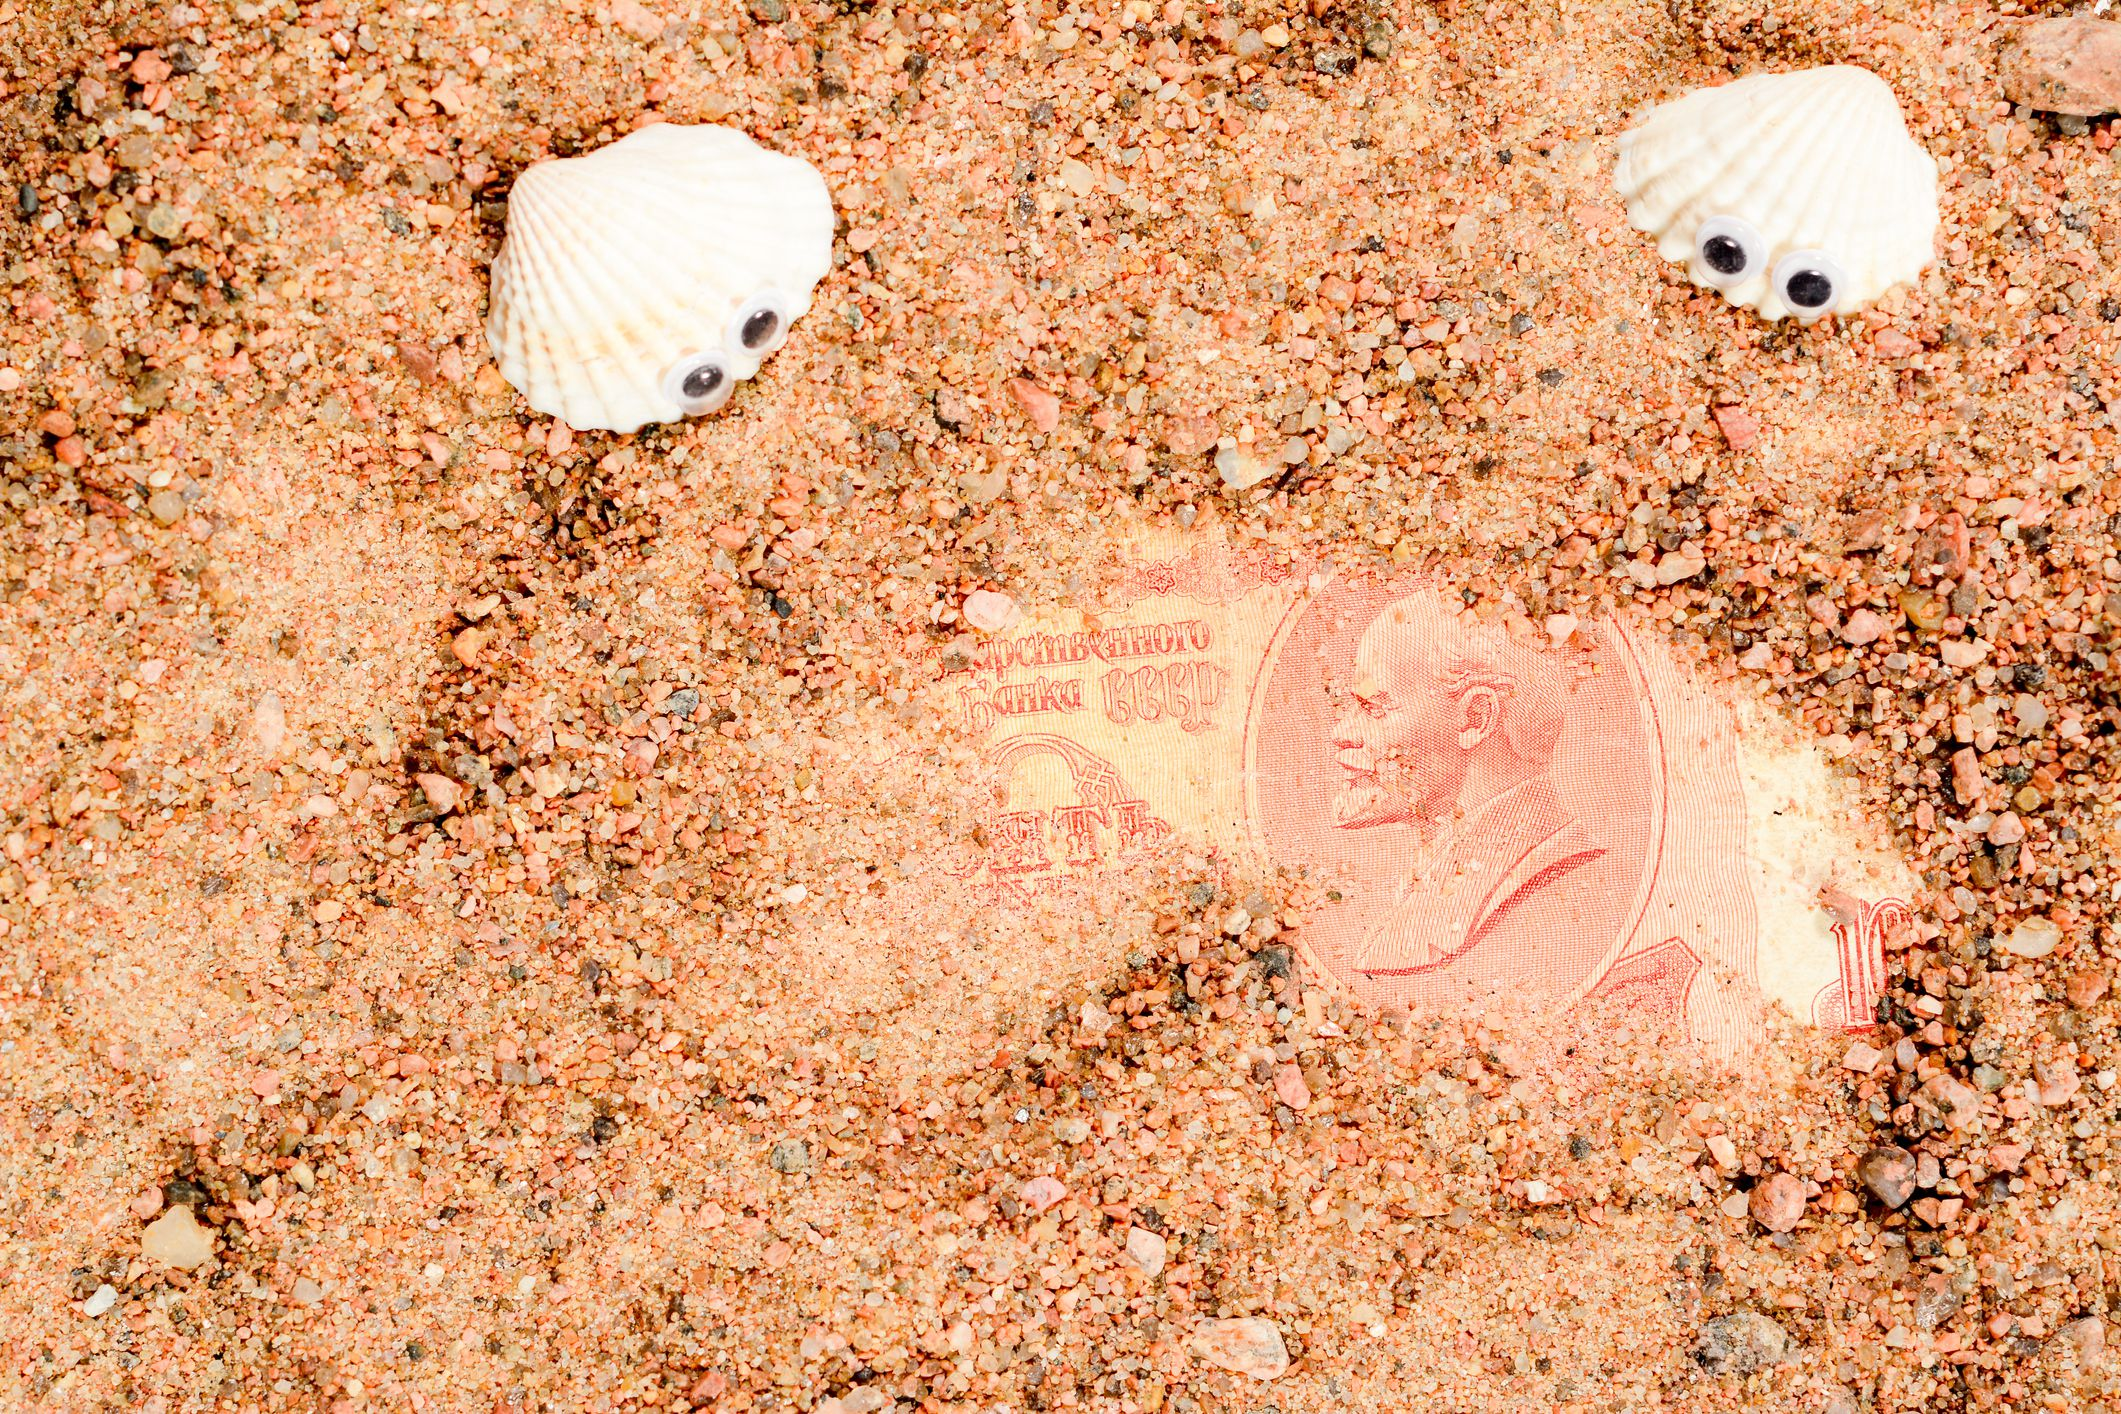 Two sea shells with googly eyes, lie on the sand and look at an old Soviet banknote. Ten rubles USSR with Lenin portrait close-up.